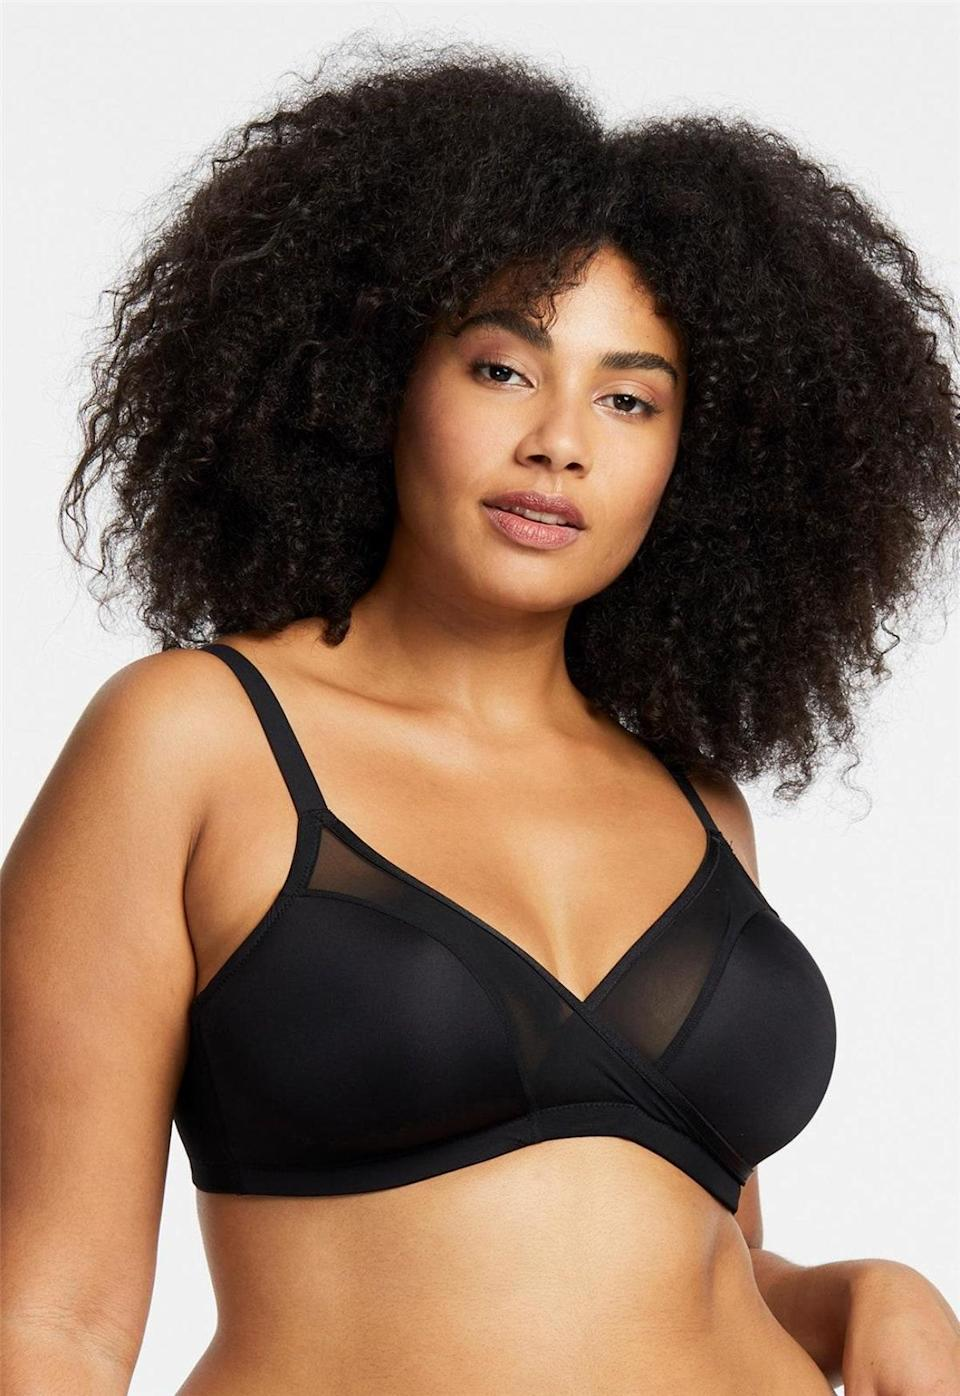 """Bigger busts can wear this wire-free bra under just about anything for invisible coverage. It comes in beige as well, with ultra-thin foam cups for a smoothing effect. $52, Nordstrom. <a href=""""https://www.nordstrom.com/s/montelle-intimates-wire-free-plus-bra/5821284?color=black"""" rel=""""nofollow noopener"""" target=""""_blank"""" data-ylk=""""slk:Get it now!"""" class=""""link rapid-noclick-resp"""">Get it now!</a>"""